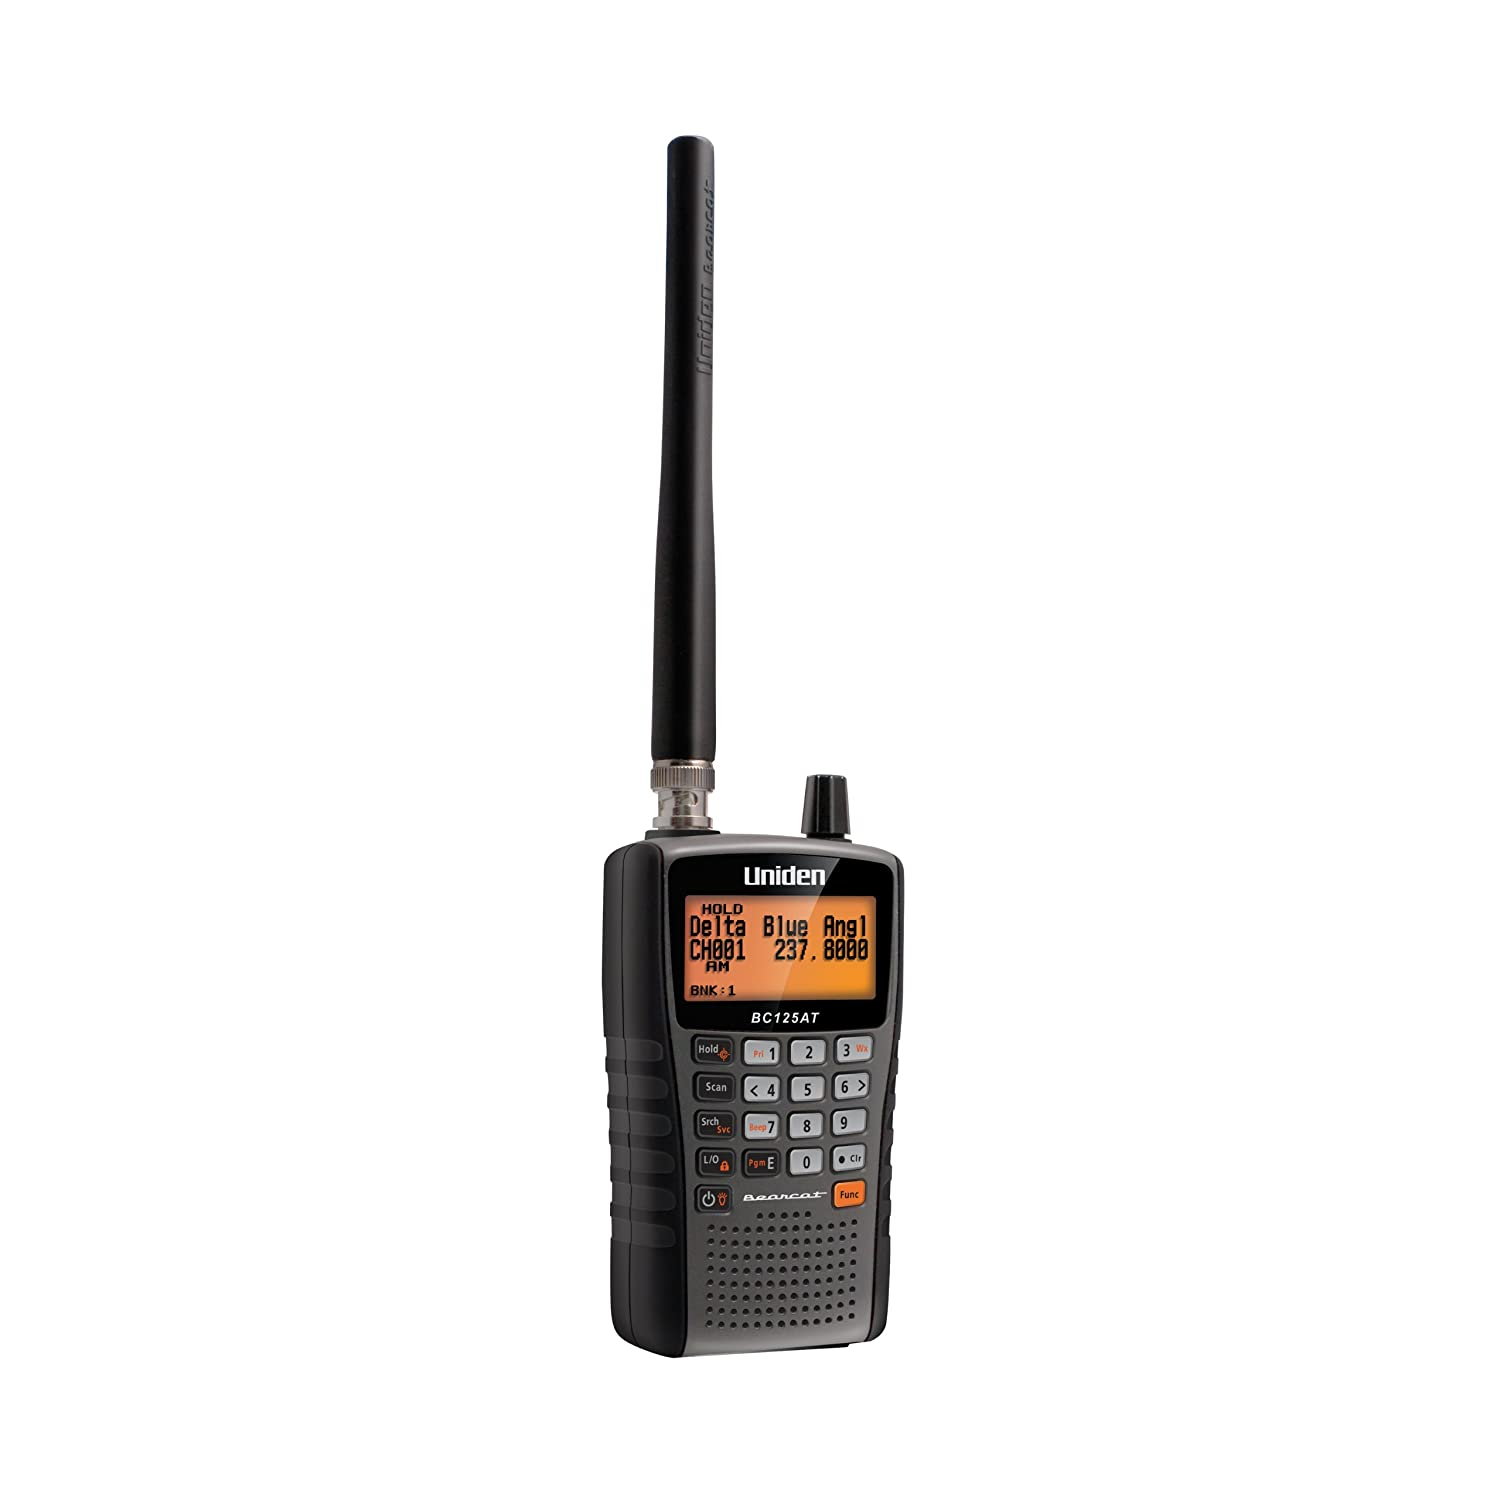 Uniden Bearcat BC125AT Handheld Scanner  500 Alpha-Tagged channels  Public  Safety, Police, Fire, Emergency, Marine, Military Aircraft, and Auto Racing